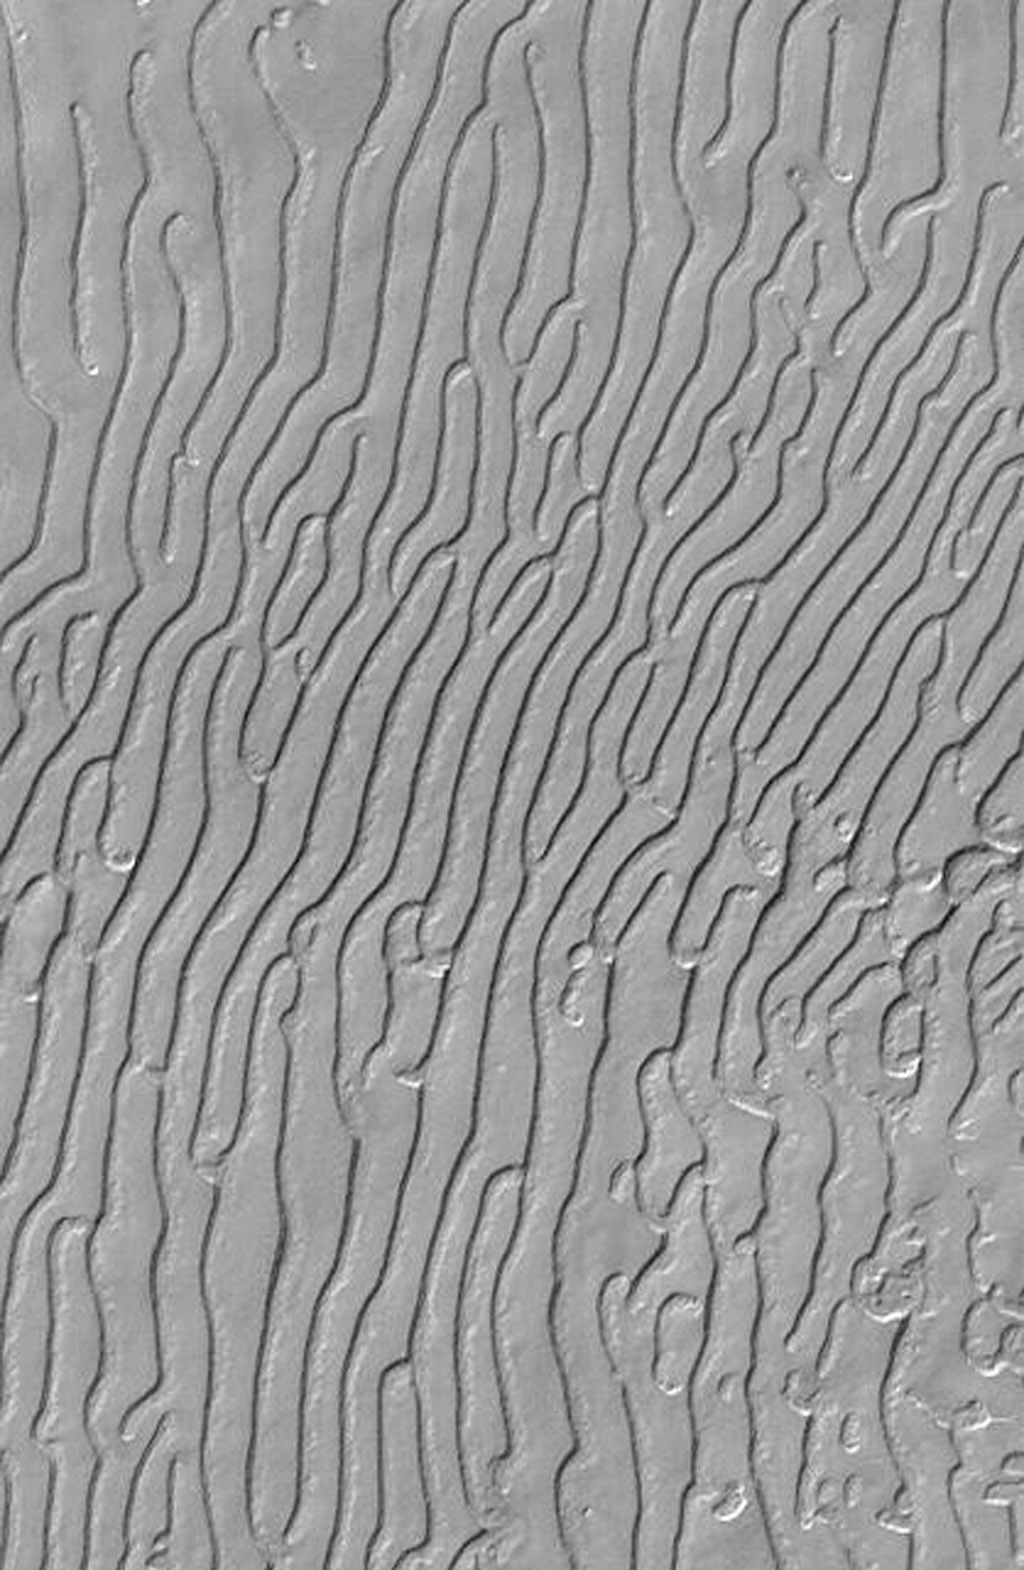 Some portions of the martian south polar residual cap have long, somewhat curved troughs instead of circular pits. This image was captured by NASA's Mars Global Surveyor (MGS) on Aug. 4, 1999.